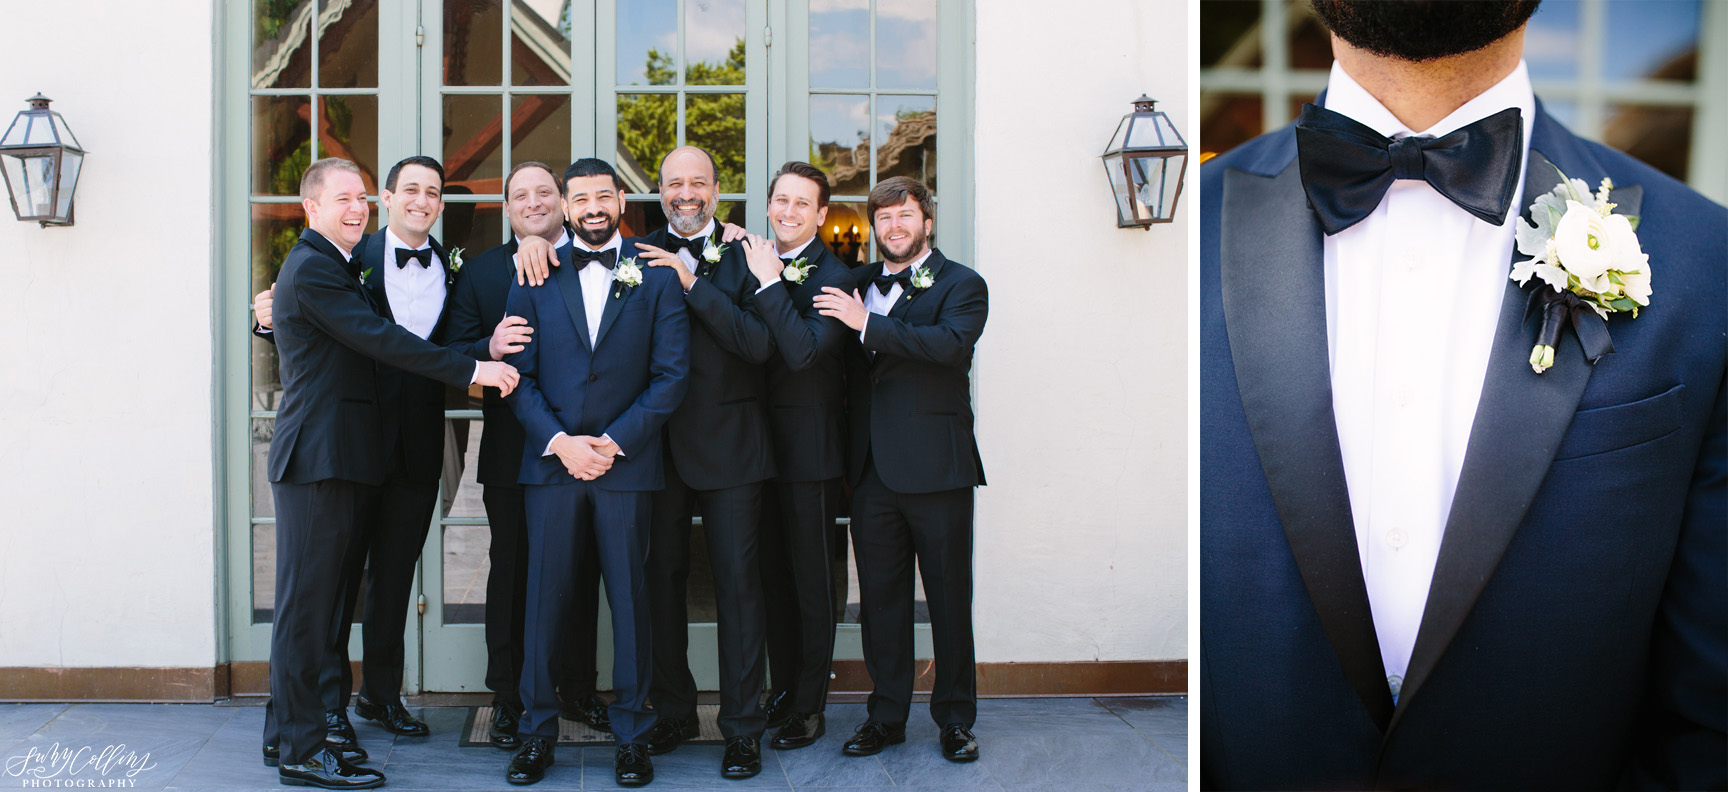 poses, indoor, romantic, spring, light and airy, natural light, ideas, passion, artistic, creative, inspiration, editorial, art, lighting, love, Knoxville, Tennessee, Cherokee country club, vibrant, colorful, bright, groom, groomsmen, bridal party